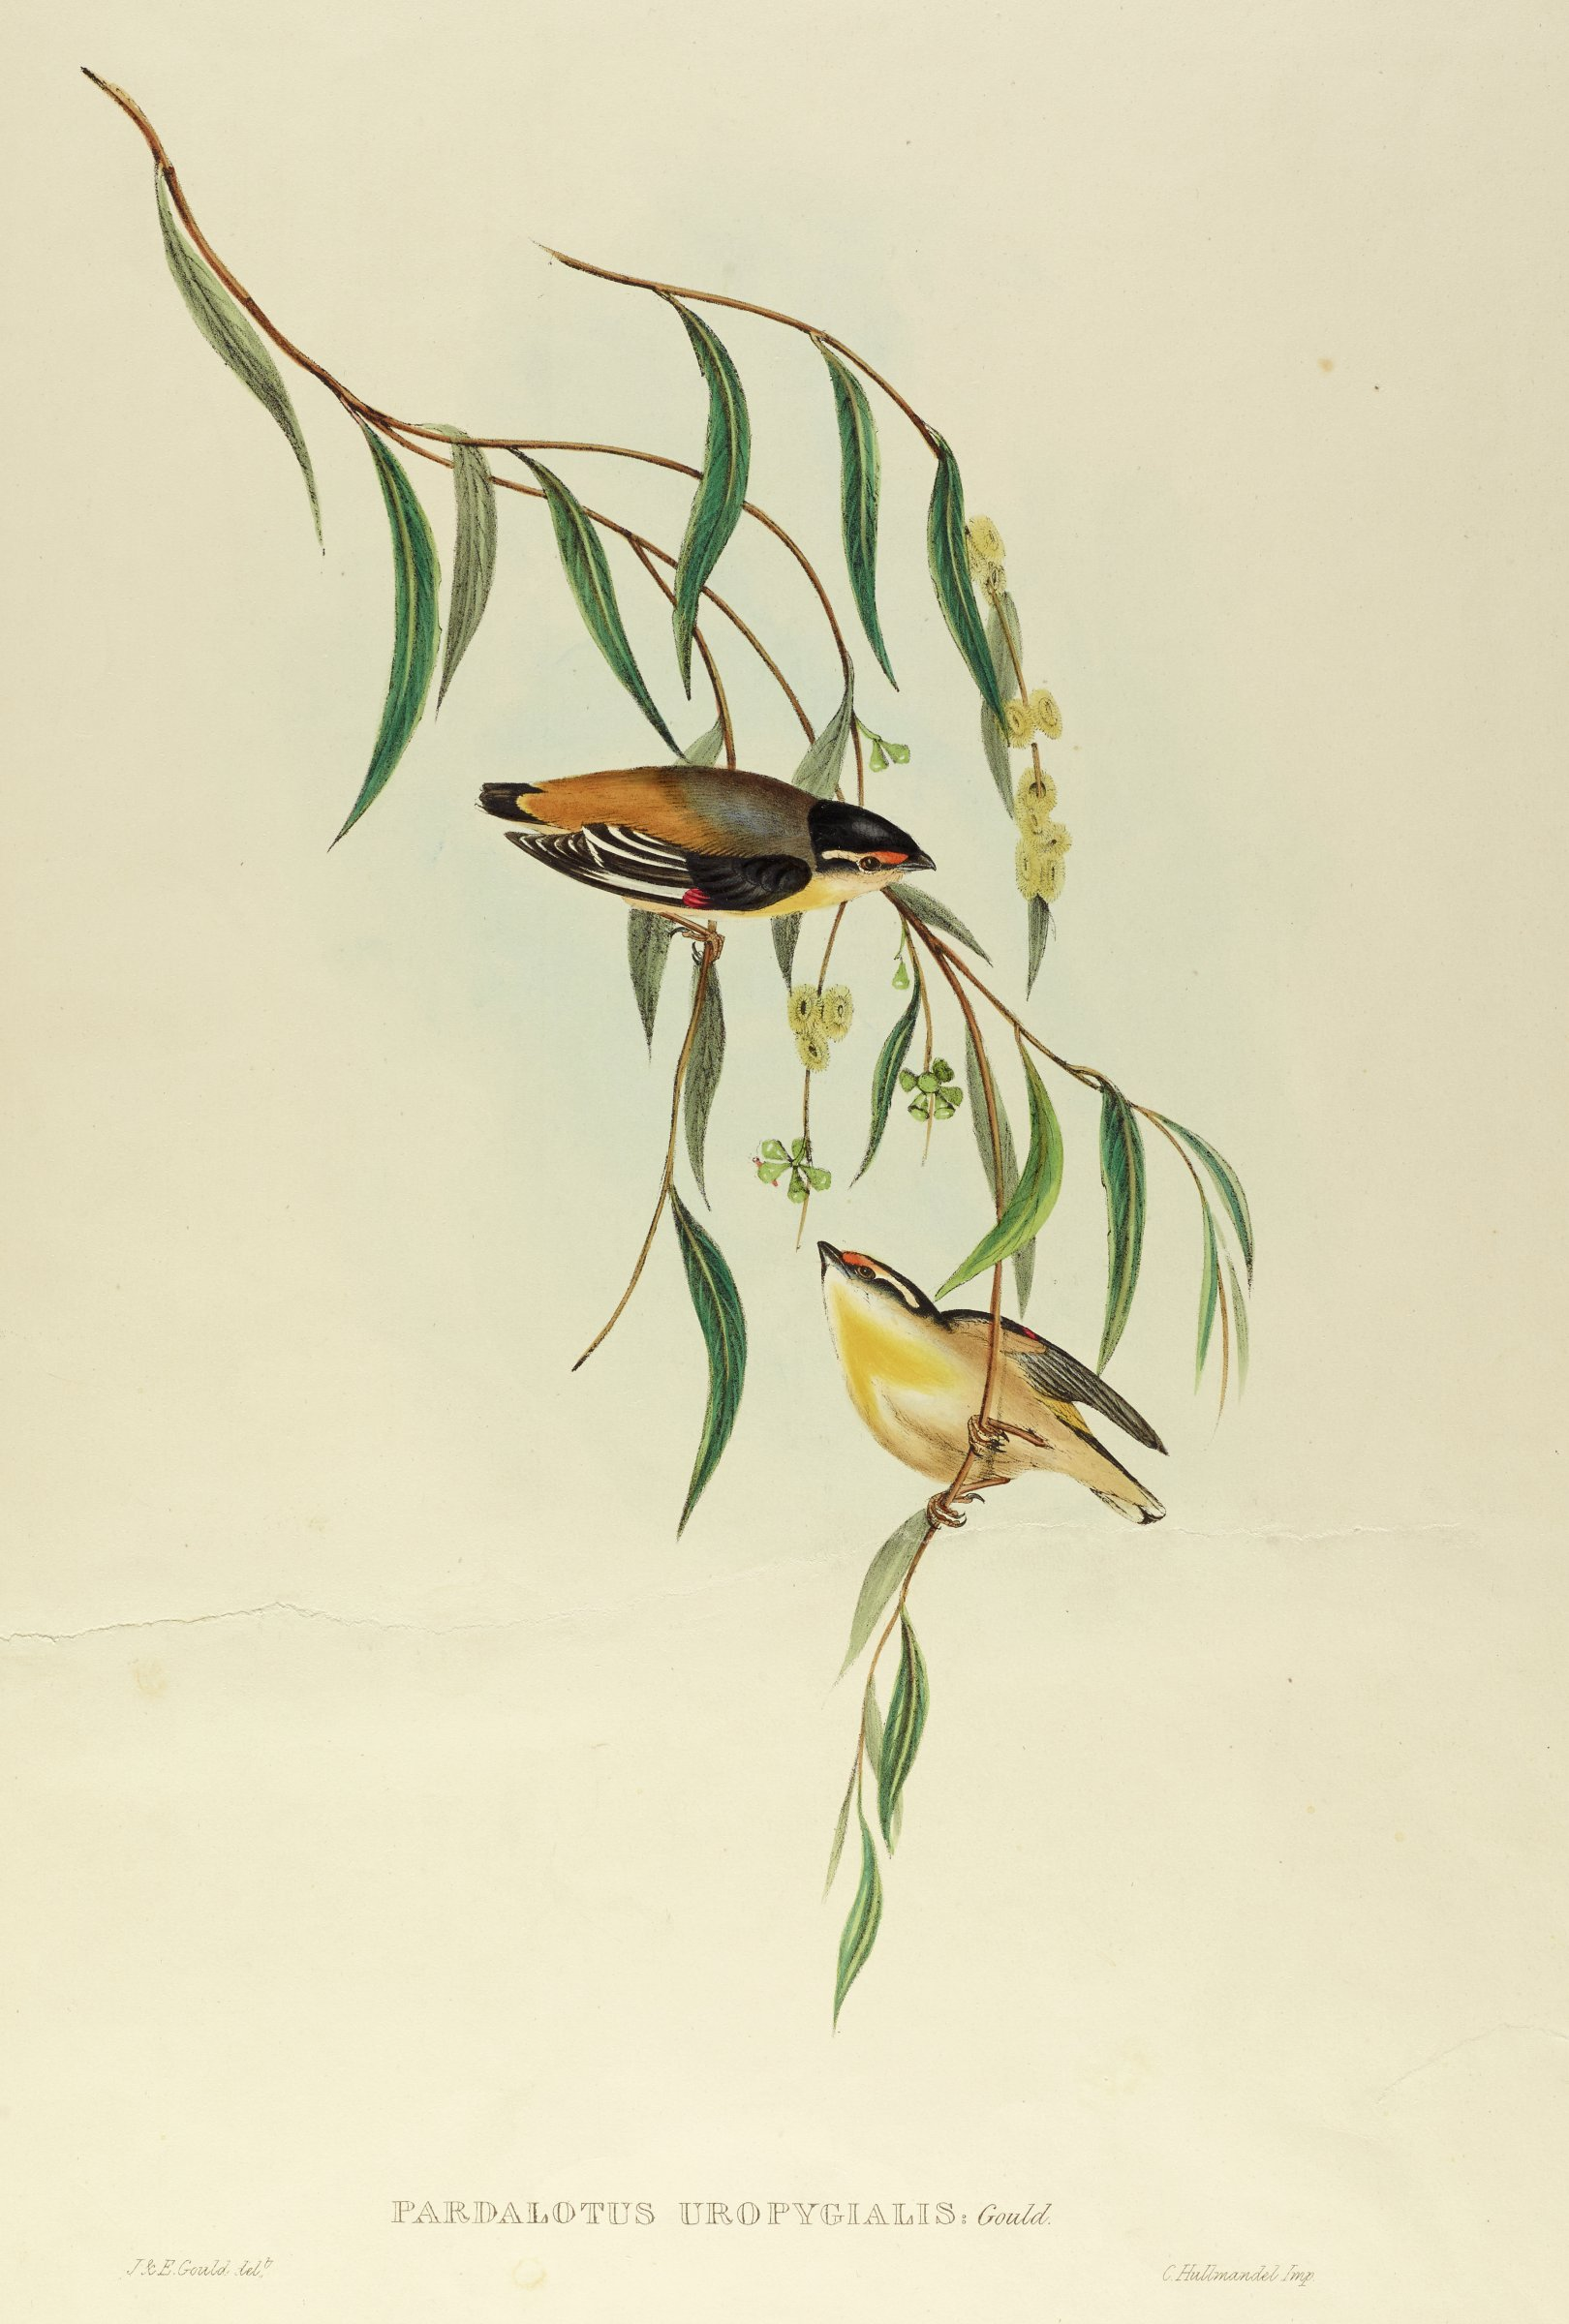 Two small yellow, black, white, orange, and red birds sit on thin branches that hold thin leaves. Small yellow flowers blossom on the branches.